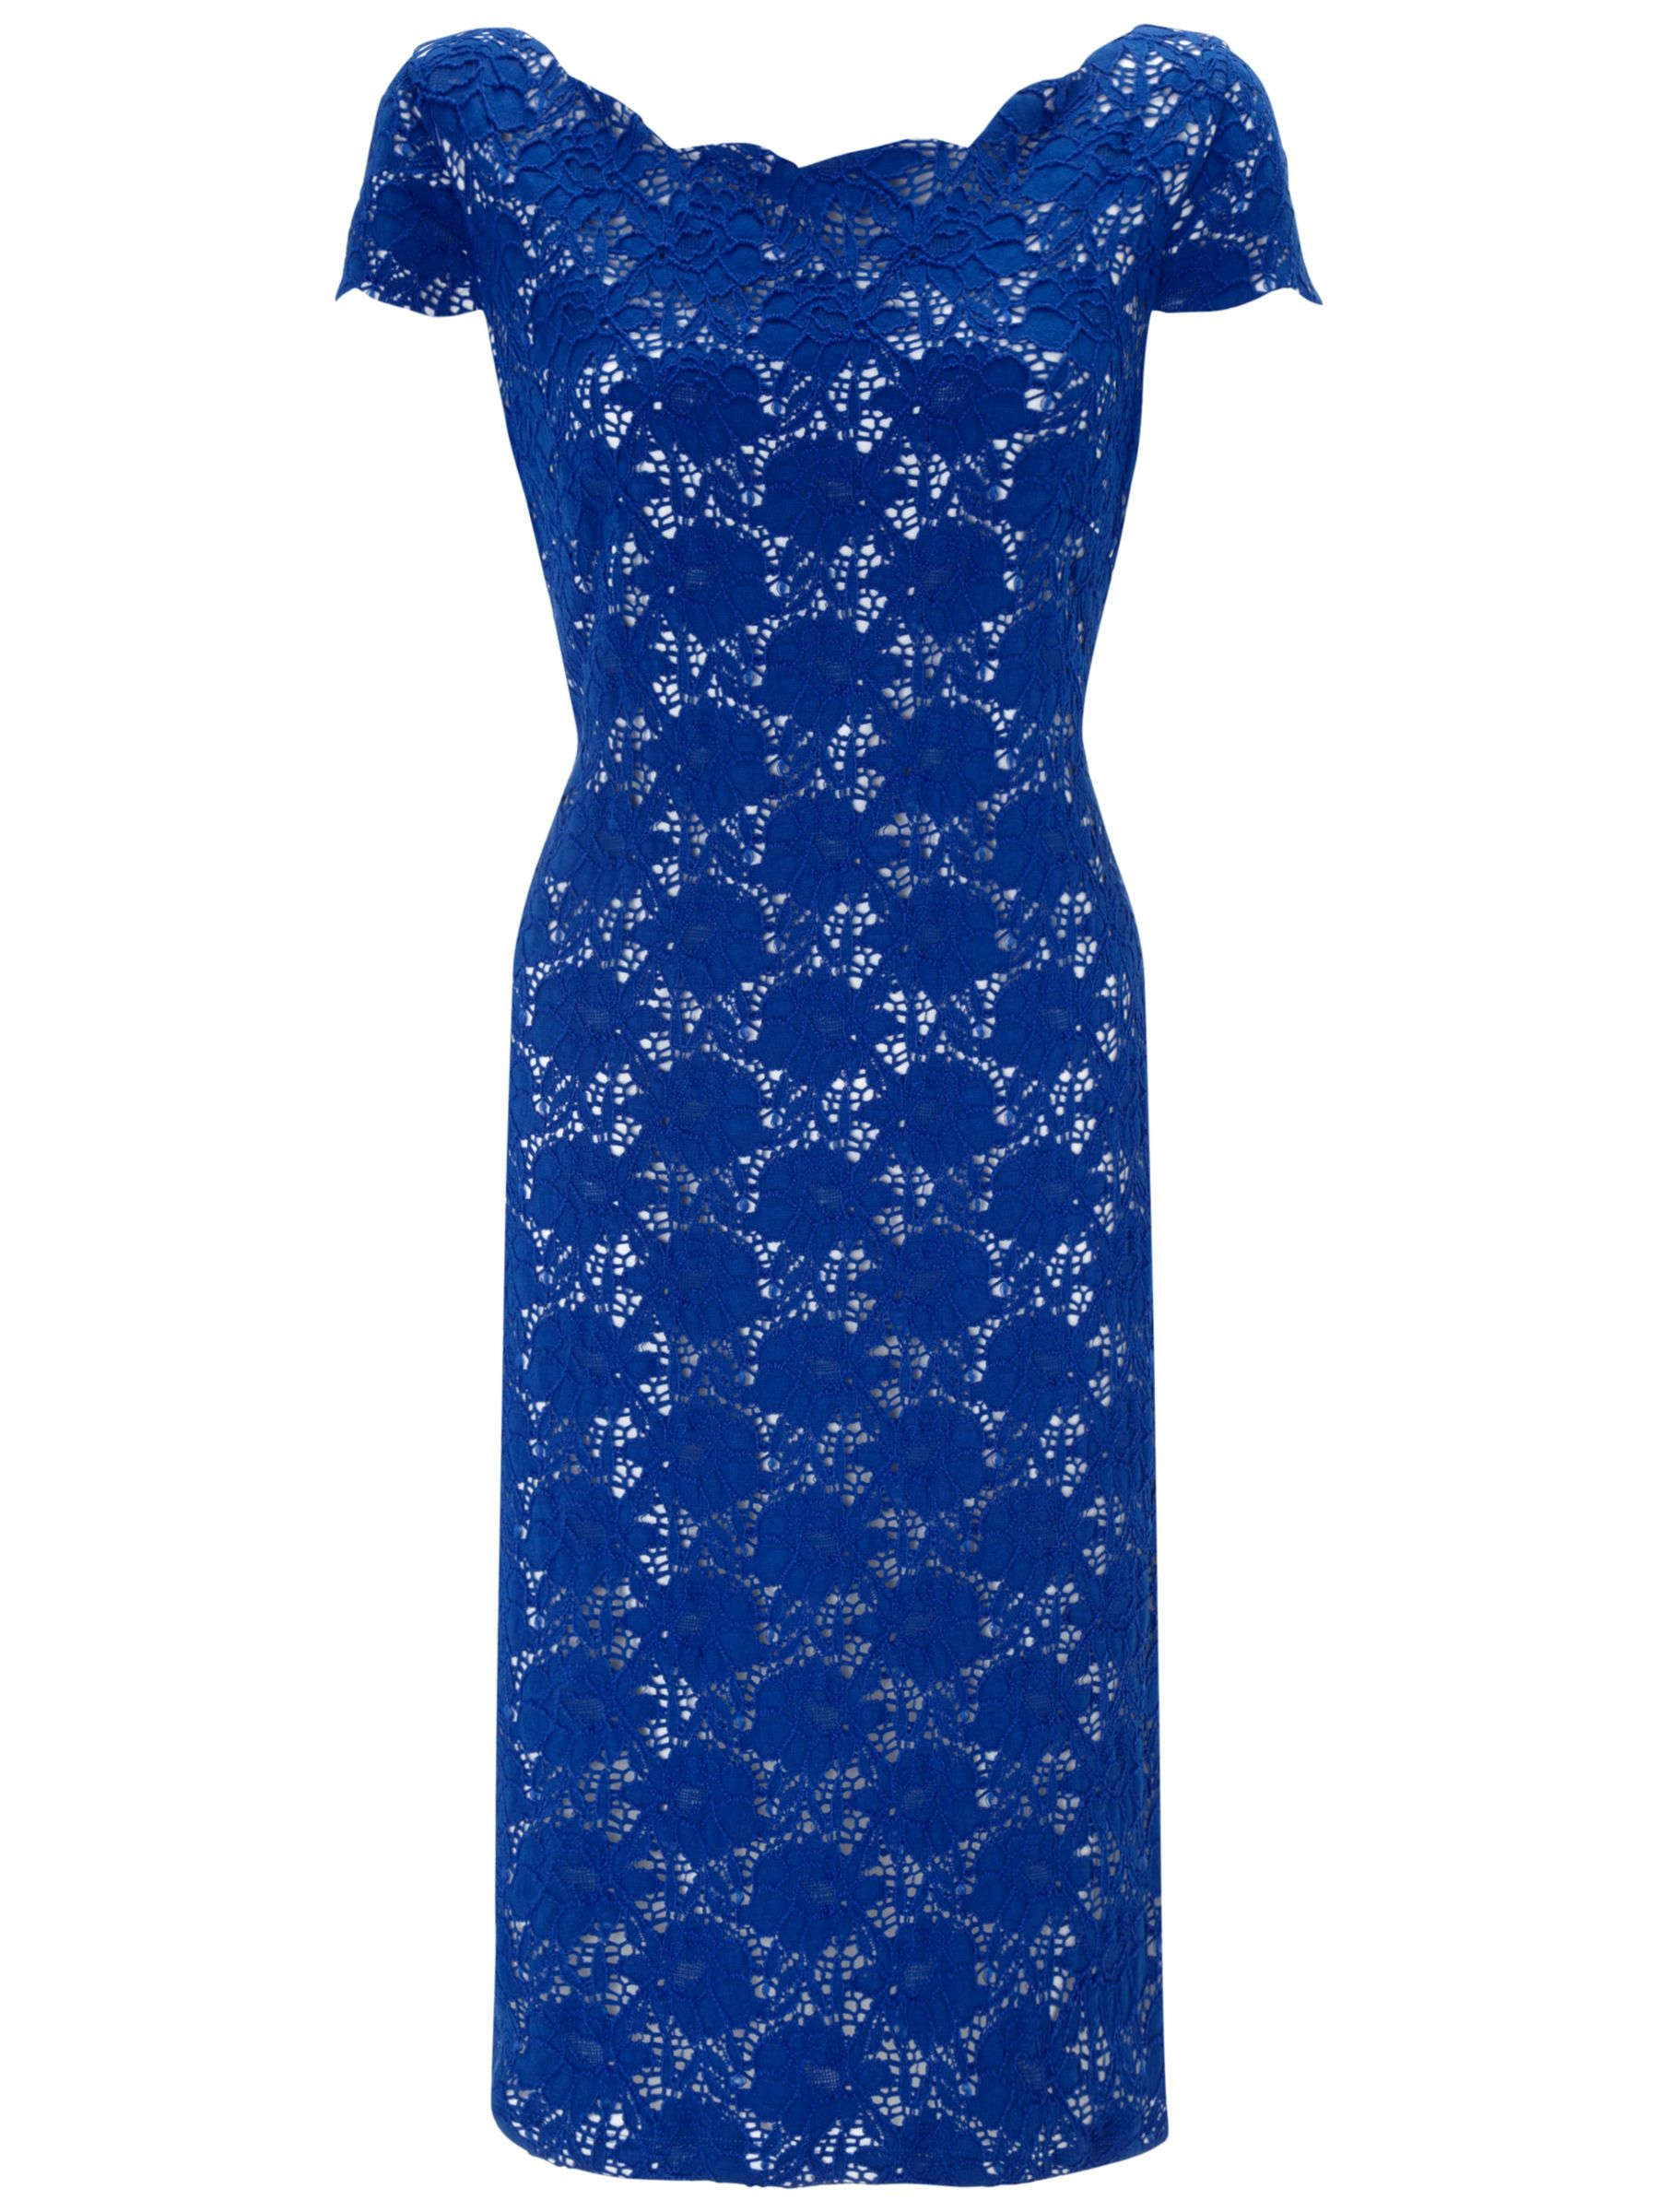 Gina Bacconi Lace Dress, Summer Blue